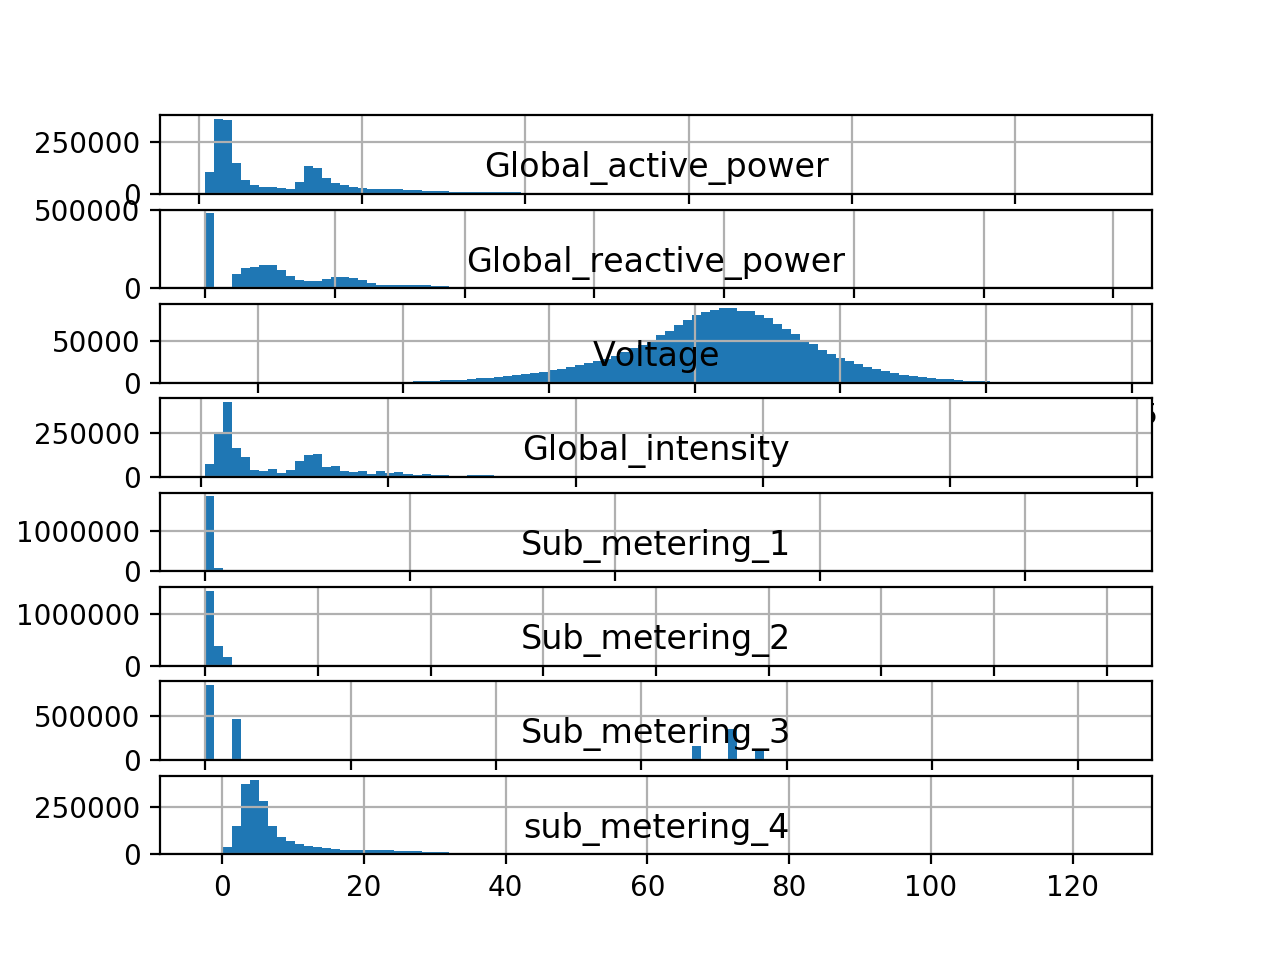 Histogram plots for Each Variable in the Power Consumption Dataset